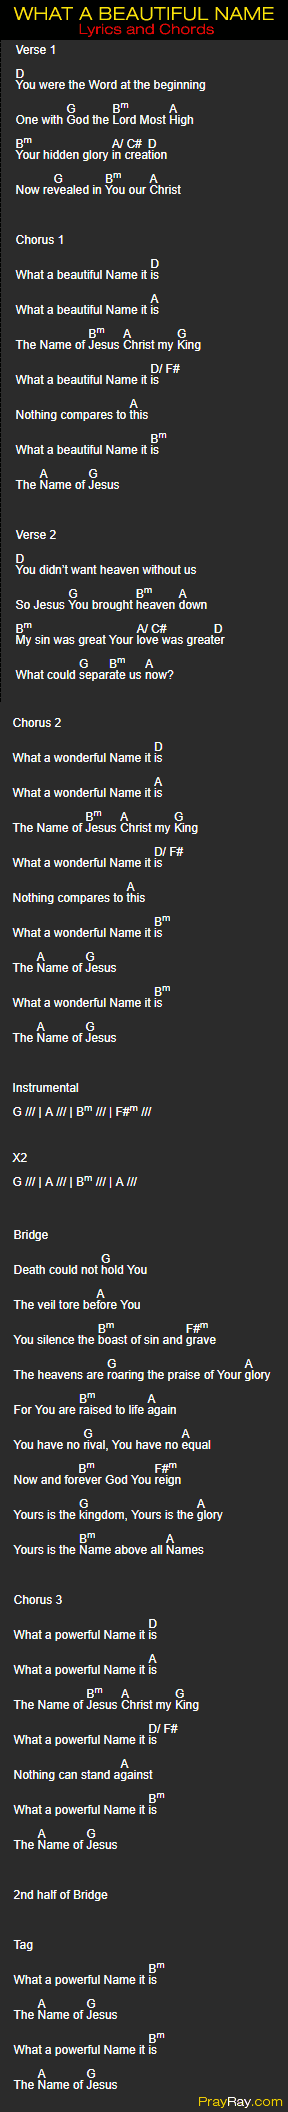 Hillsongs list of songs lyrics